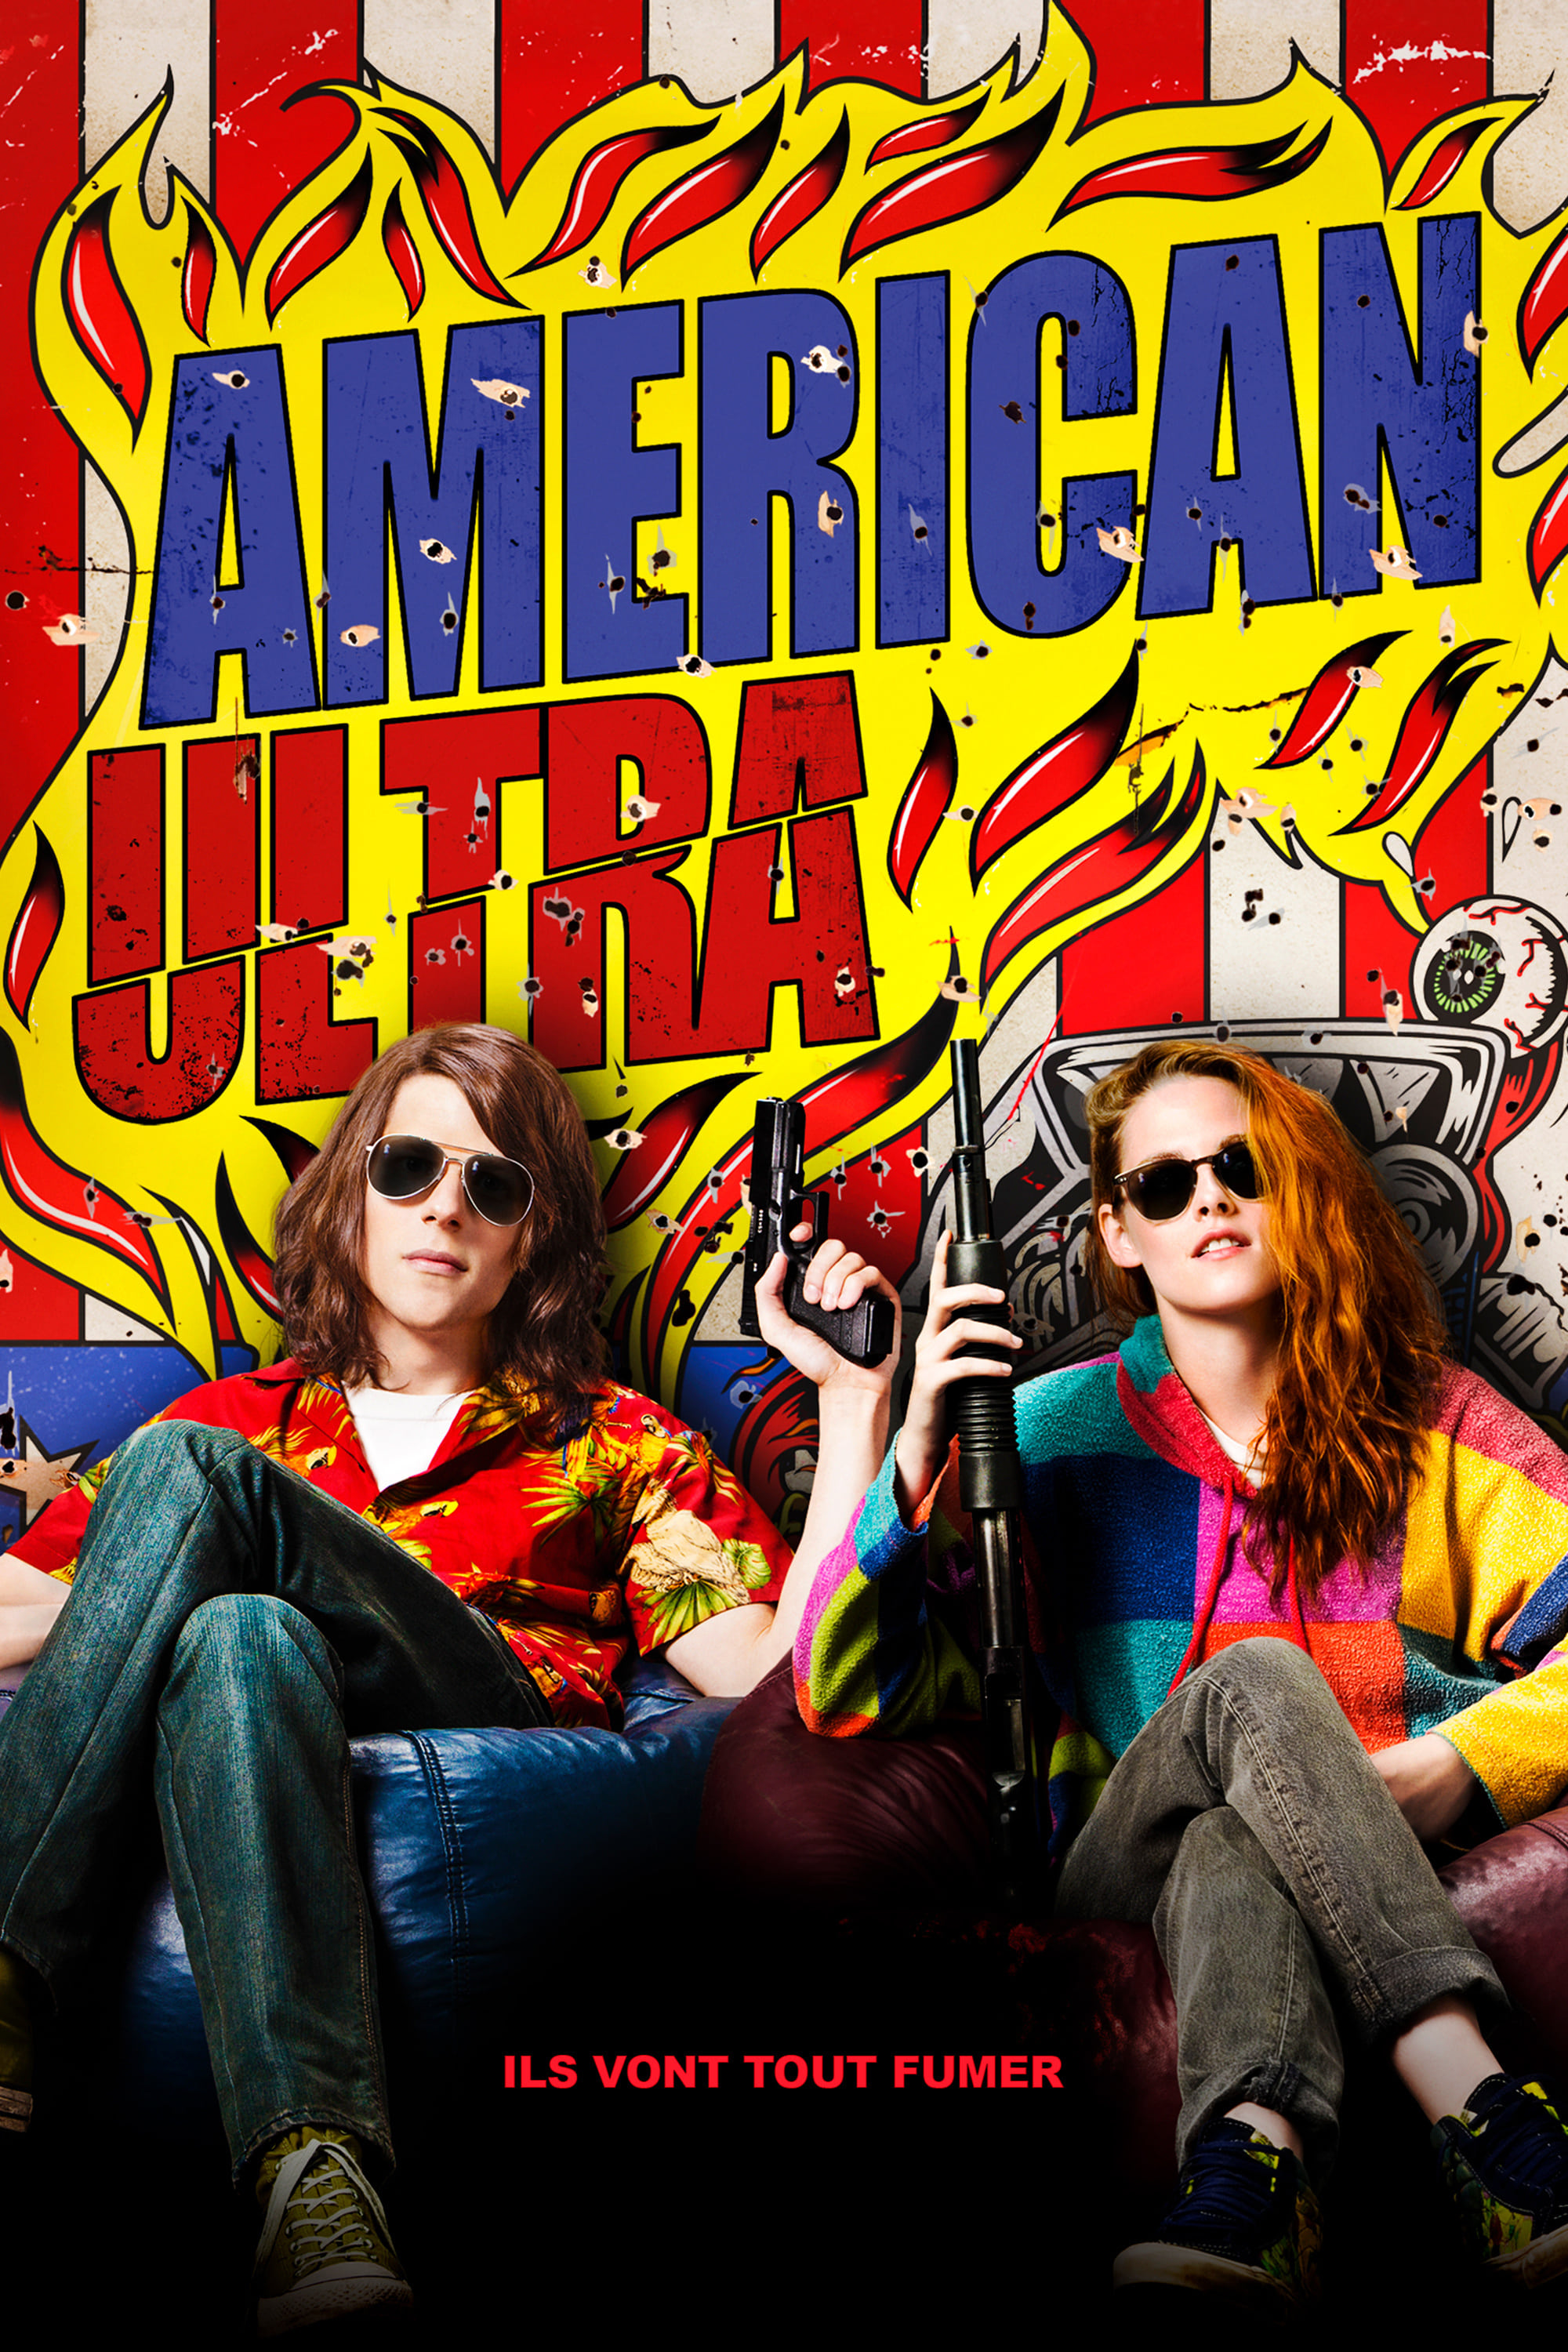 film american ultra 2015 en streaming vf complet filmstreaming hd com. Black Bedroom Furniture Sets. Home Design Ideas